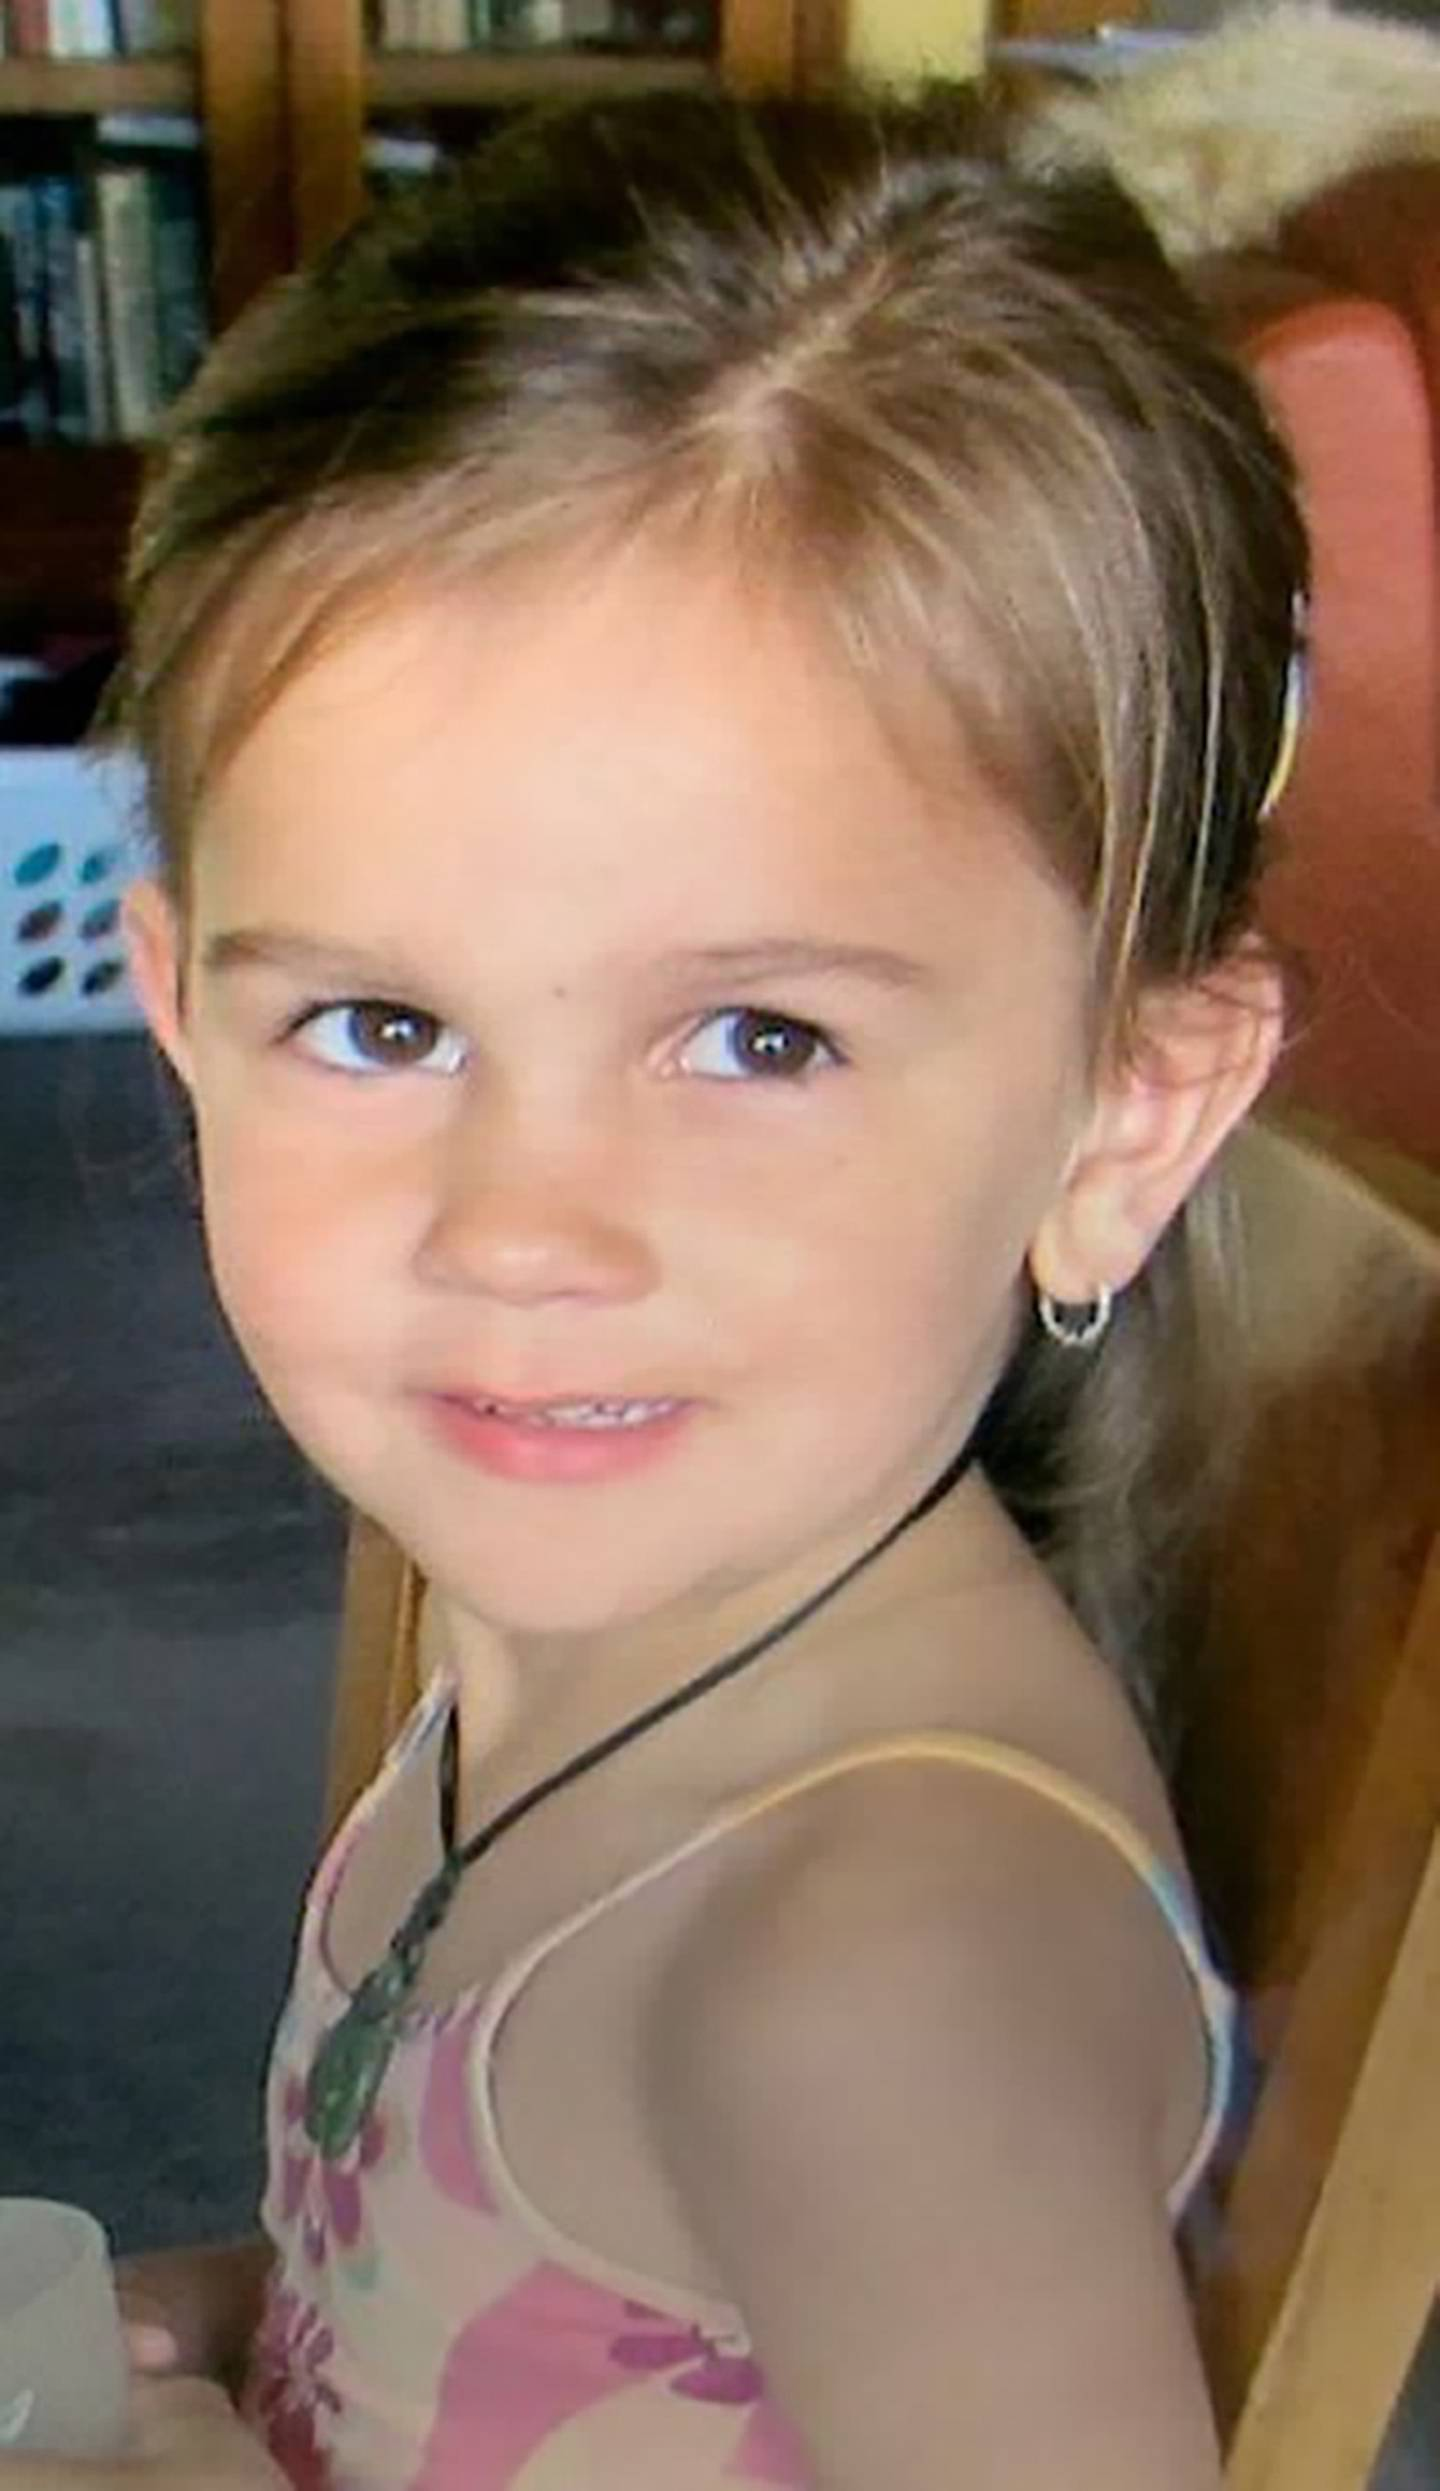 Ember Phillips, her siblings and their dad Tom Phillips are missing. Photo / NZ Police